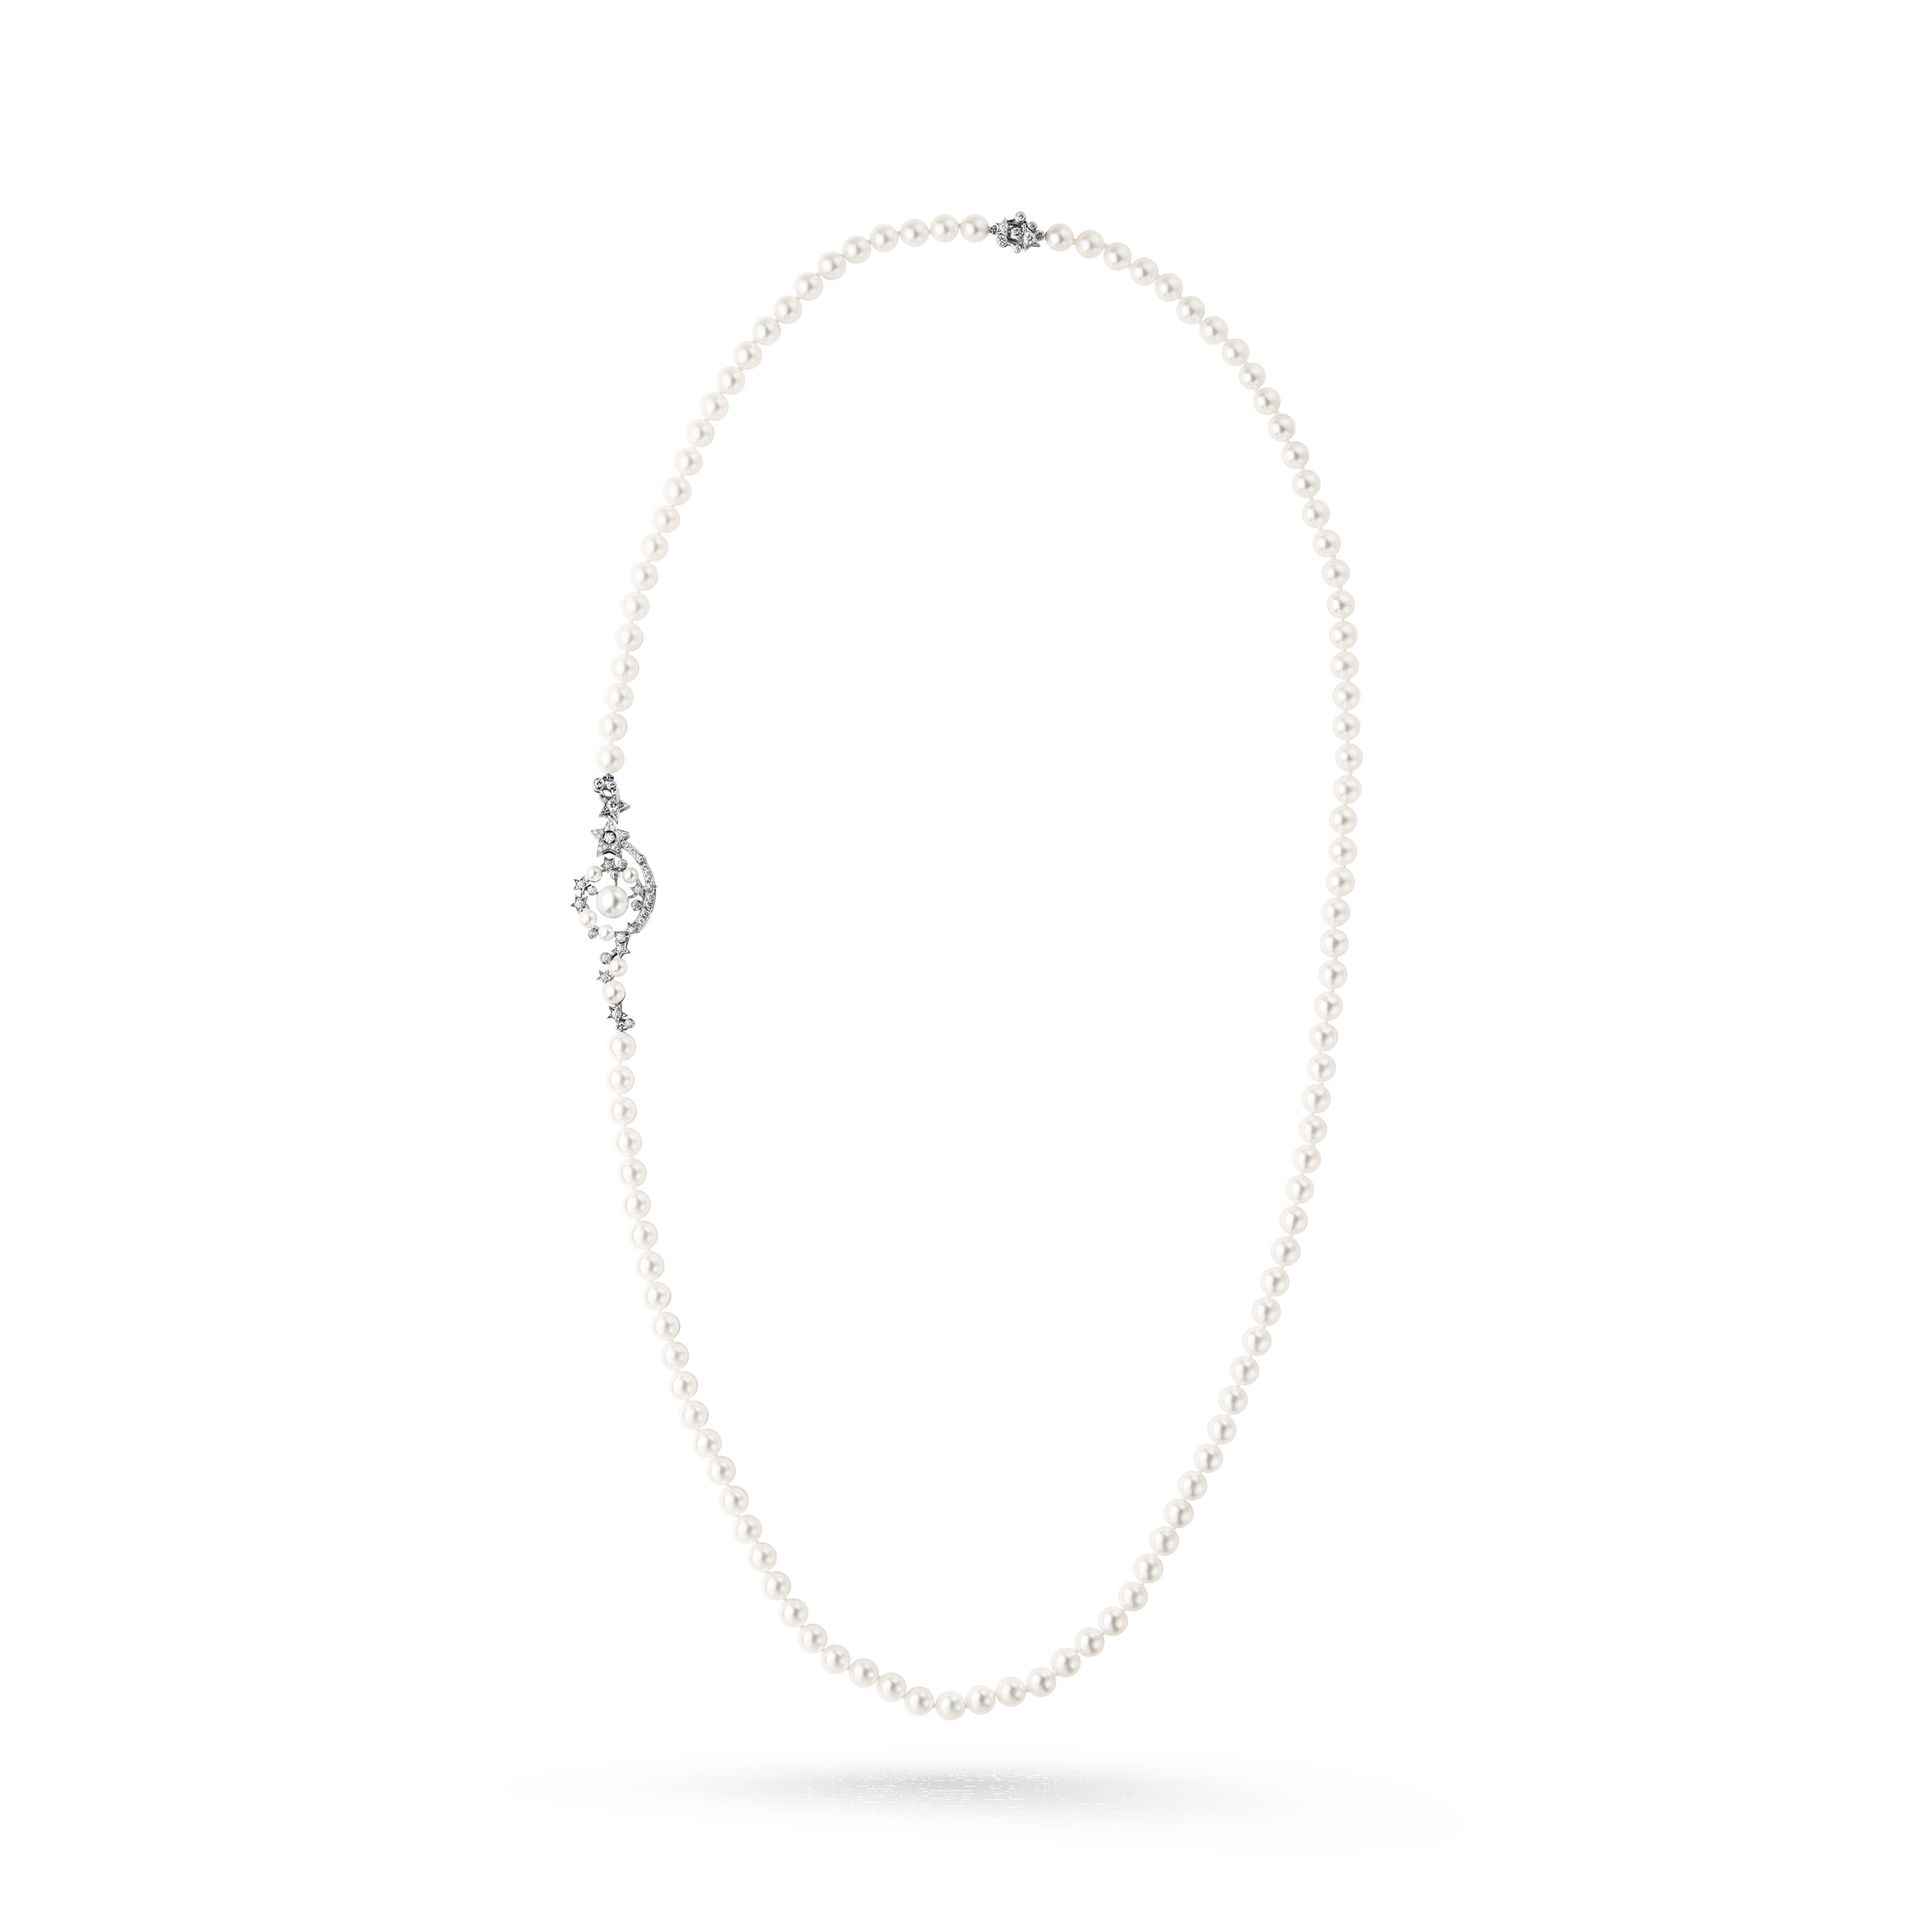 Comète Perlée long necklace - 18K white gold, diamonds, cultured pearls - CHANEL - Default view - see standard sized version